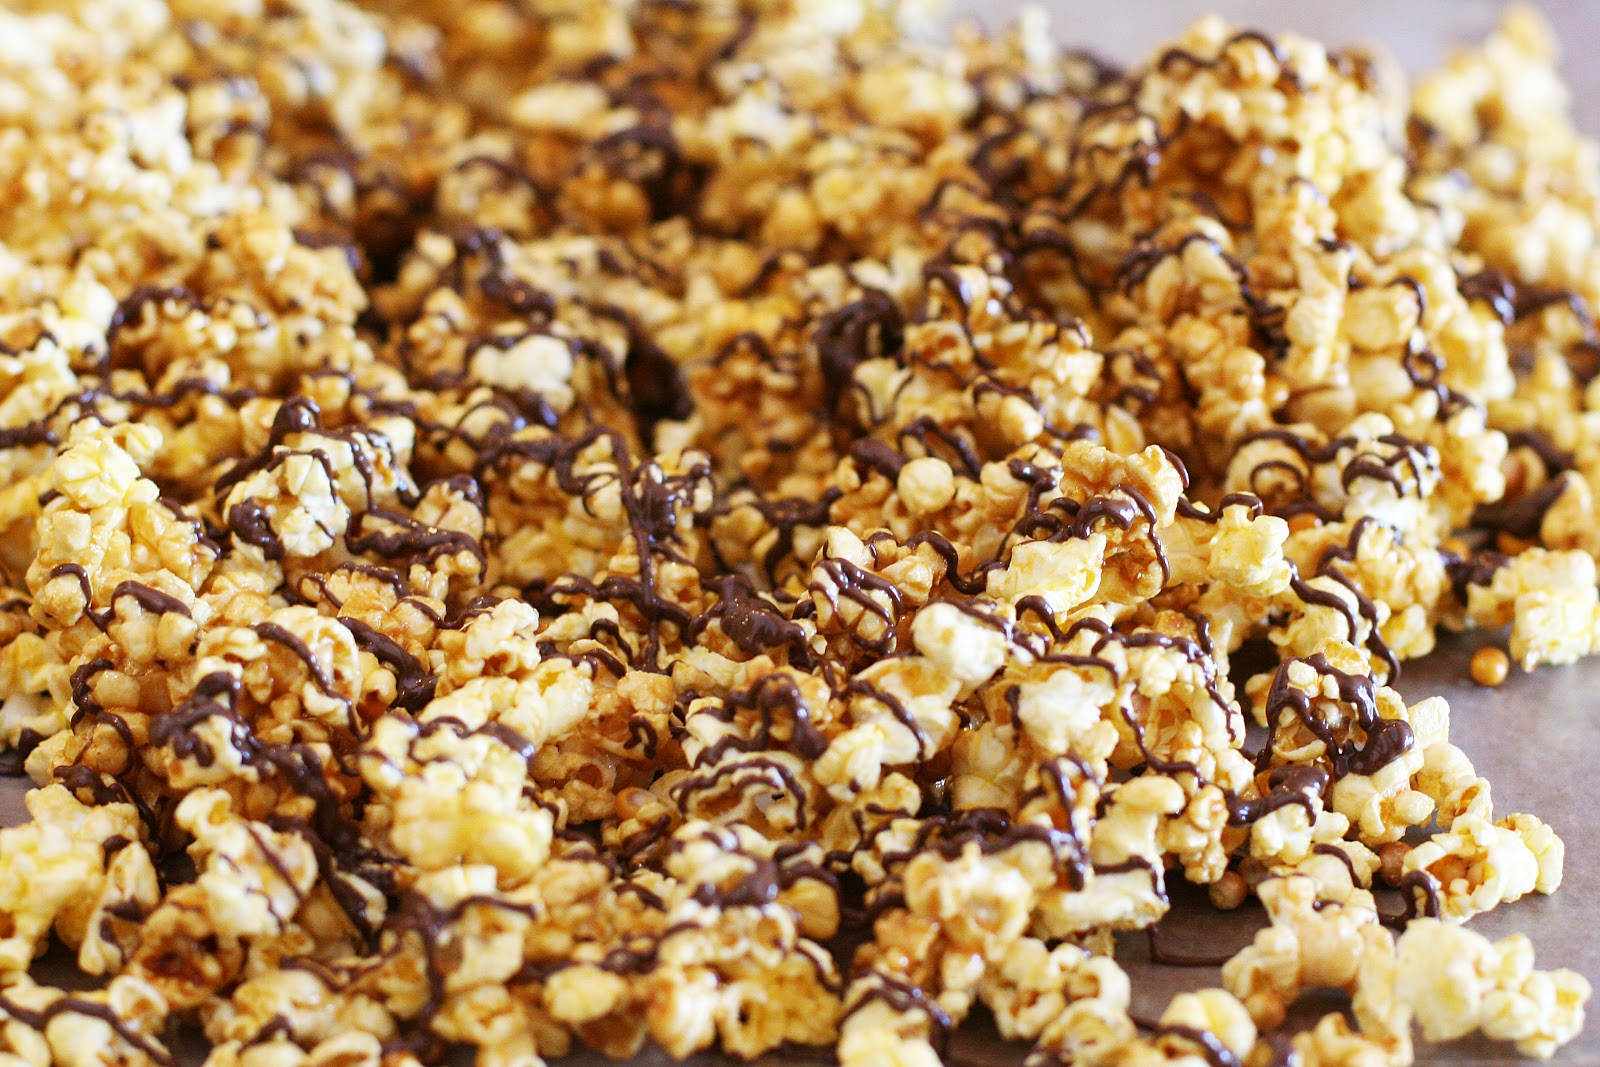 SUPER easy chocolate drizzled microwave caramel popcorn - Eighteen25